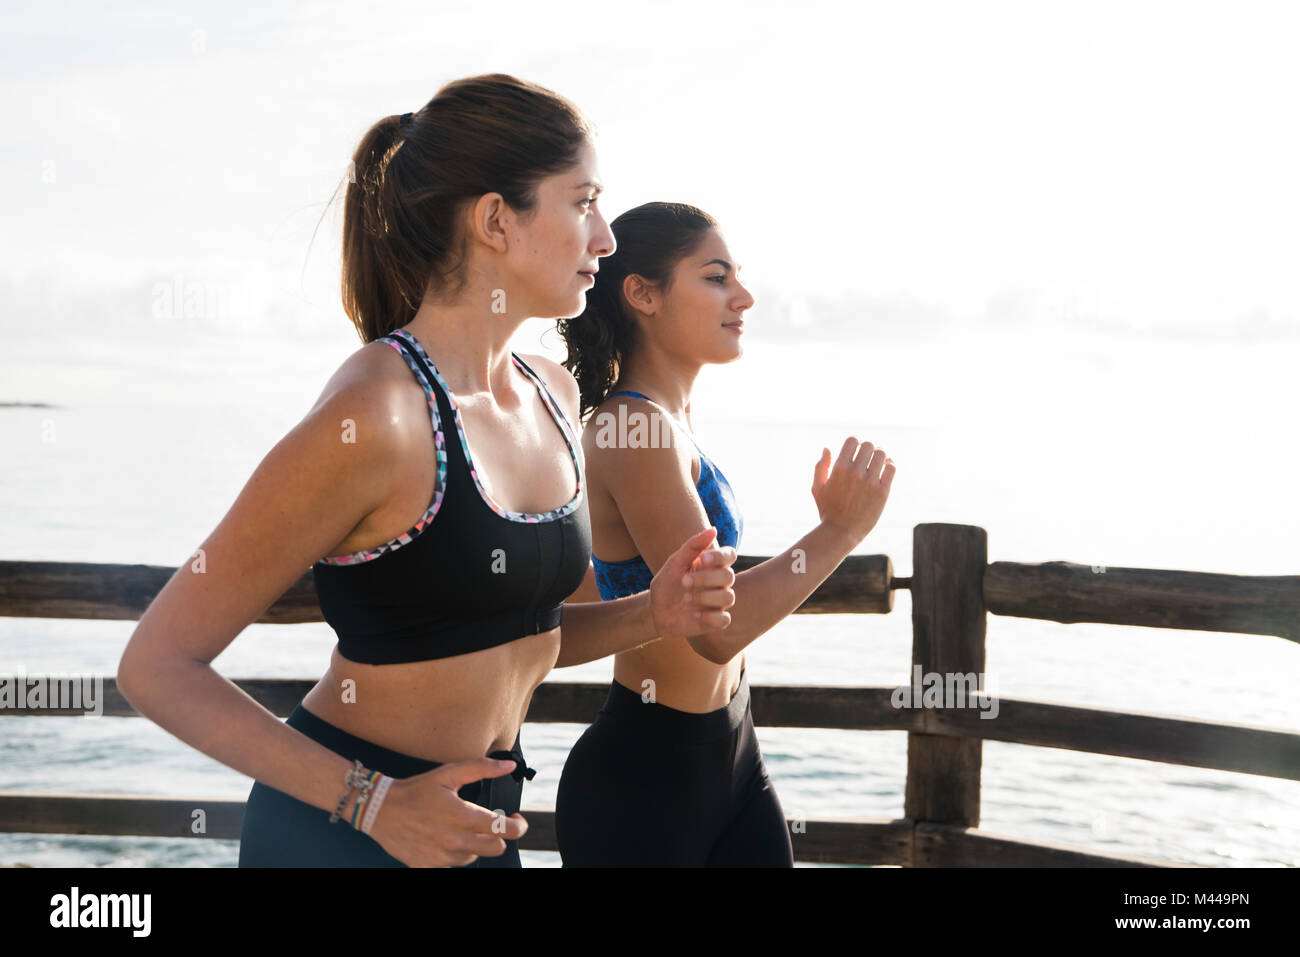 Two young female runners running on sea waterfront, Las Palmas, Canary Islands, Spain - Stock Image